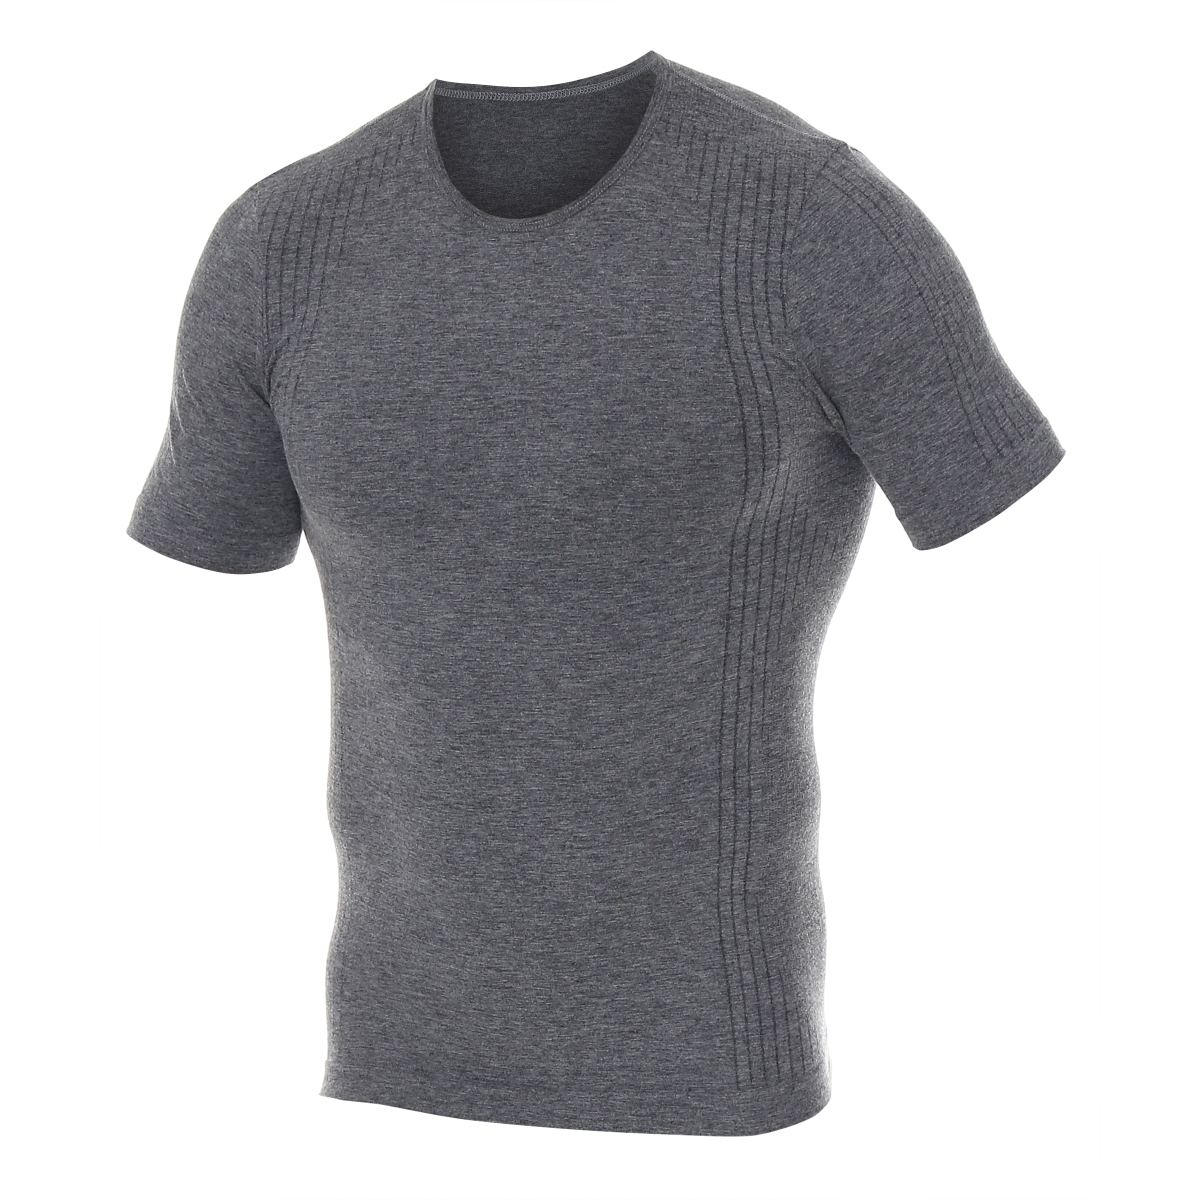 flame Resistant & Anti-Static Seamless Baselayer SS T-Shirt, Grey 1200